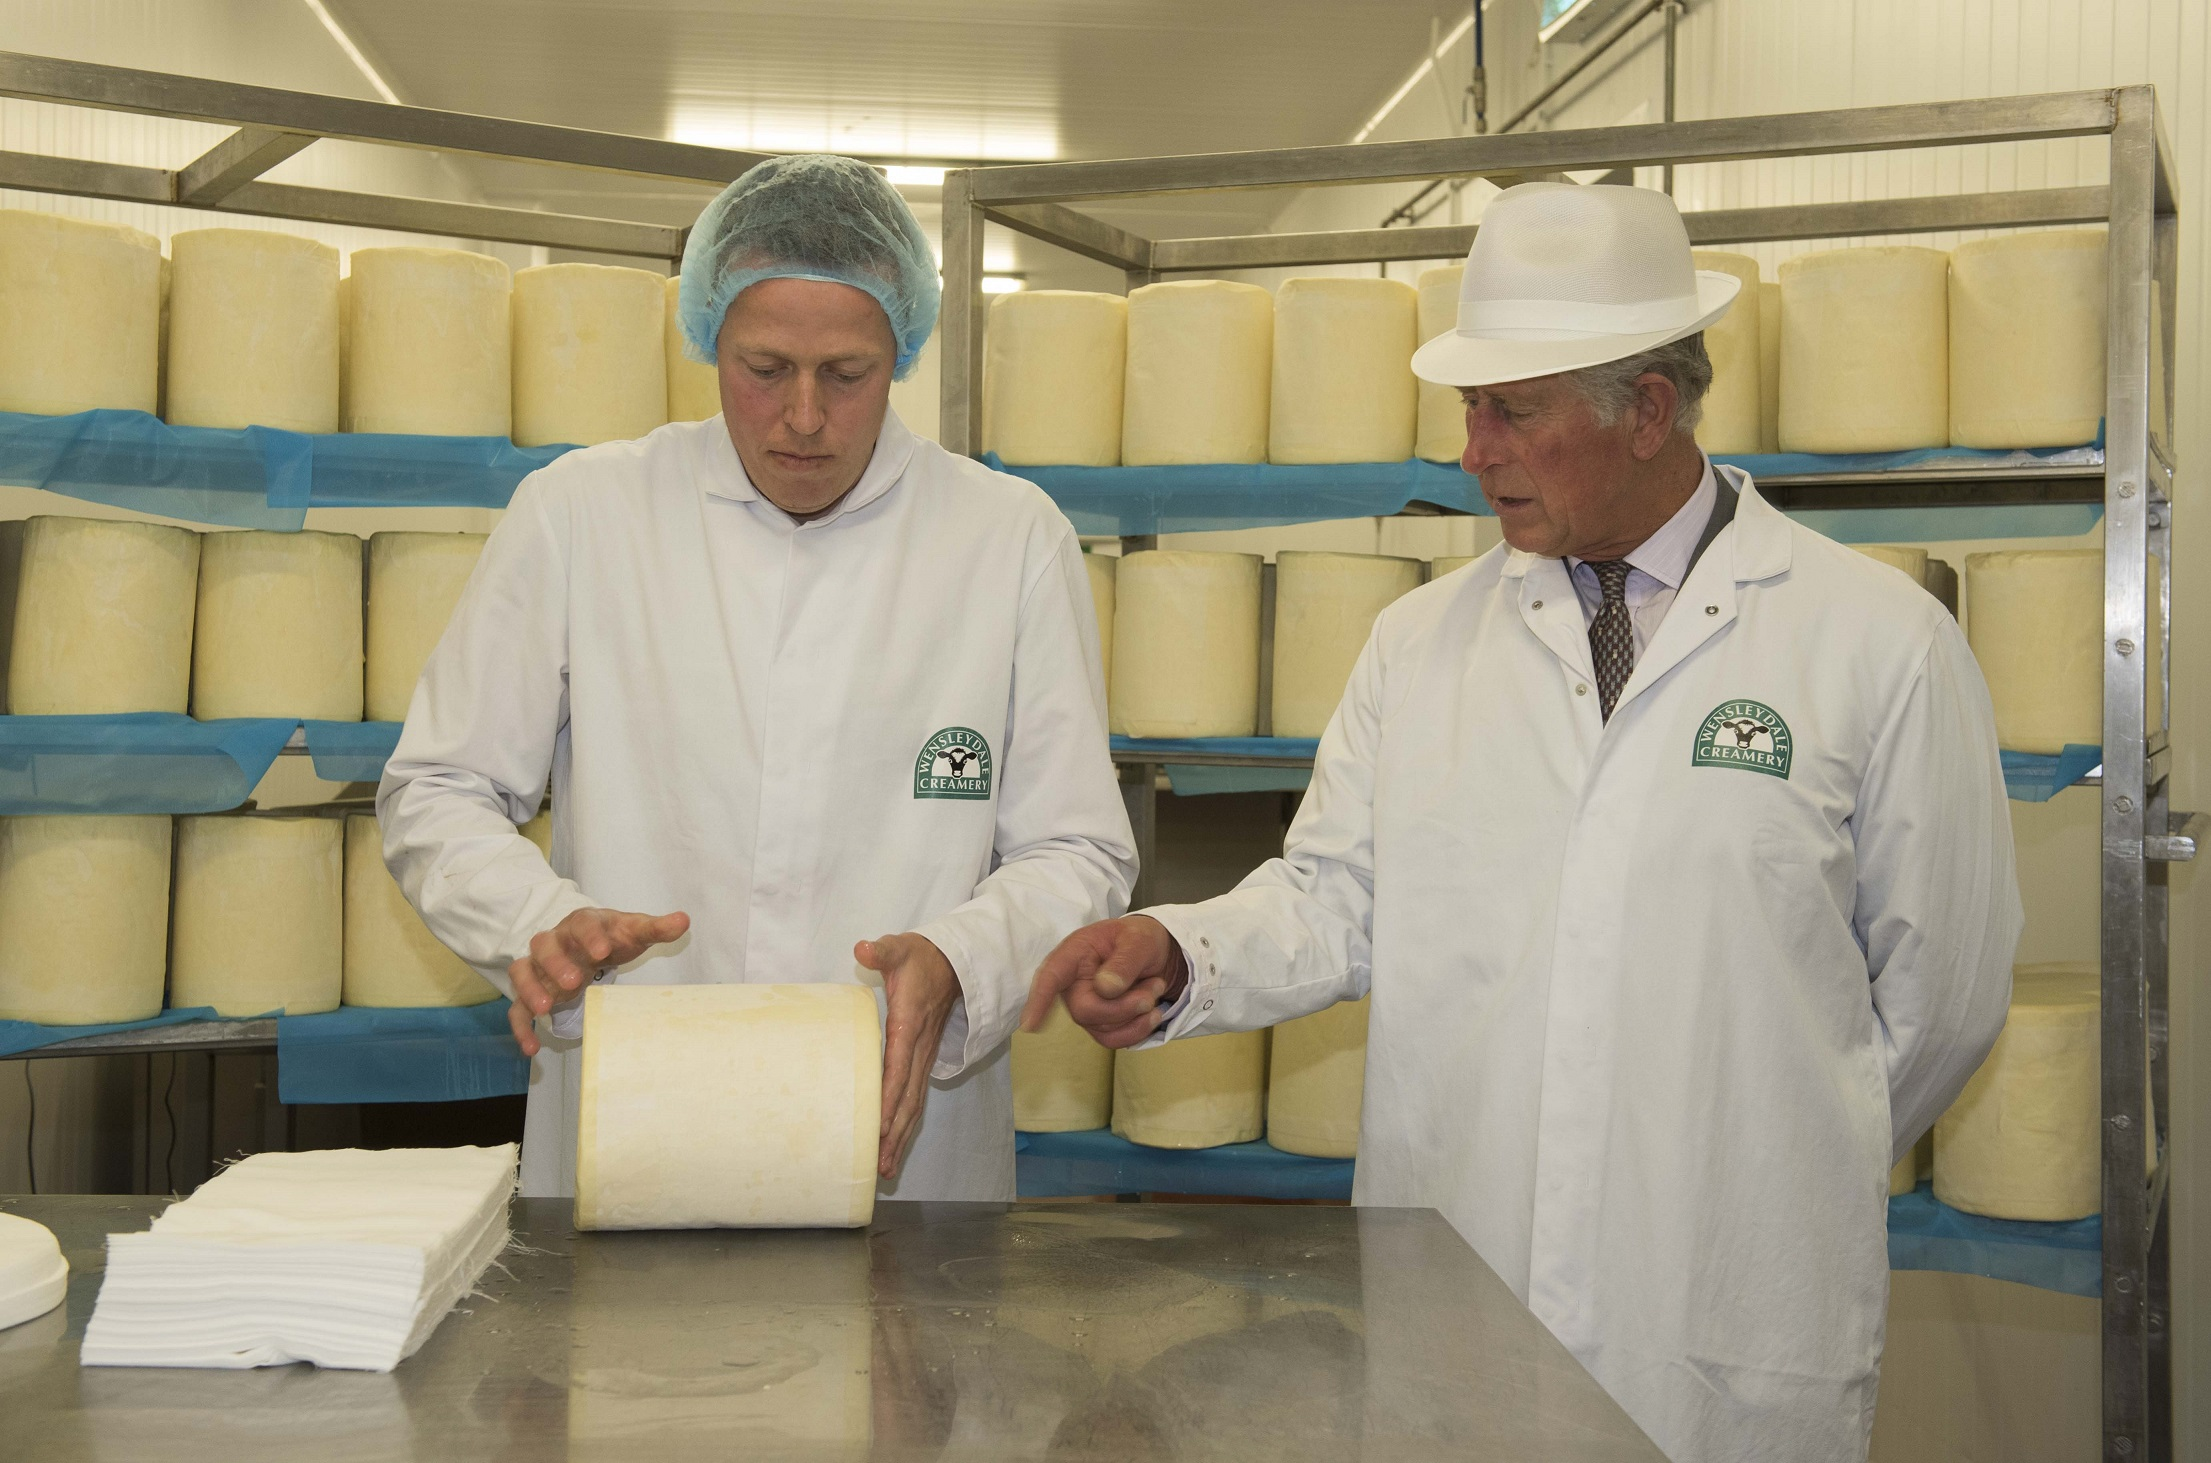 HRH The Prince of Wales Visited The Wensleydale Creamery on Thursday 10 September